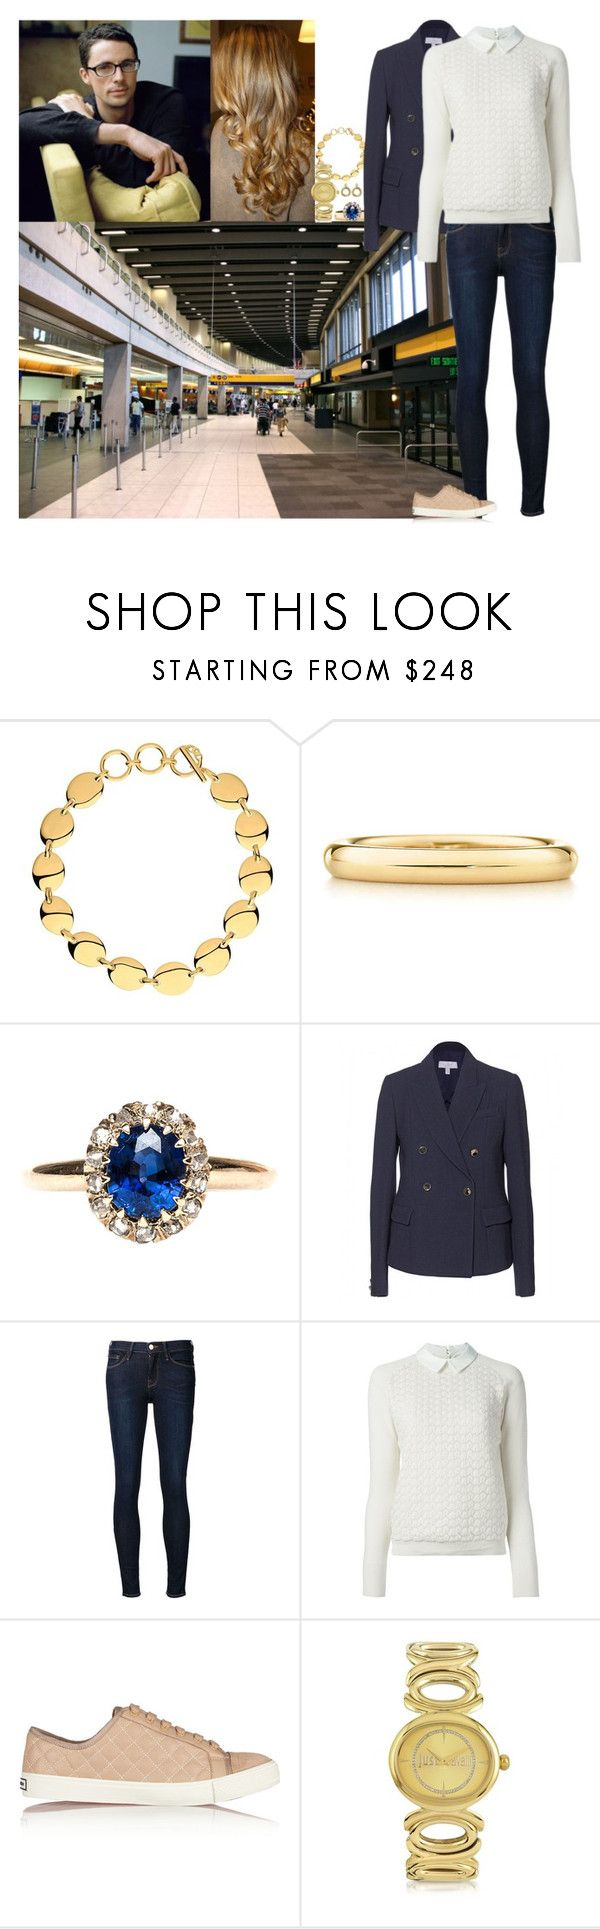 """Arriving at Calgary International Airport and beginning their day off"" by lady-maud ❤ liked on Polyvore featuring Elsa Peretti, Mulberry, Frame Denim, Tory Burch and Just Cavalli"